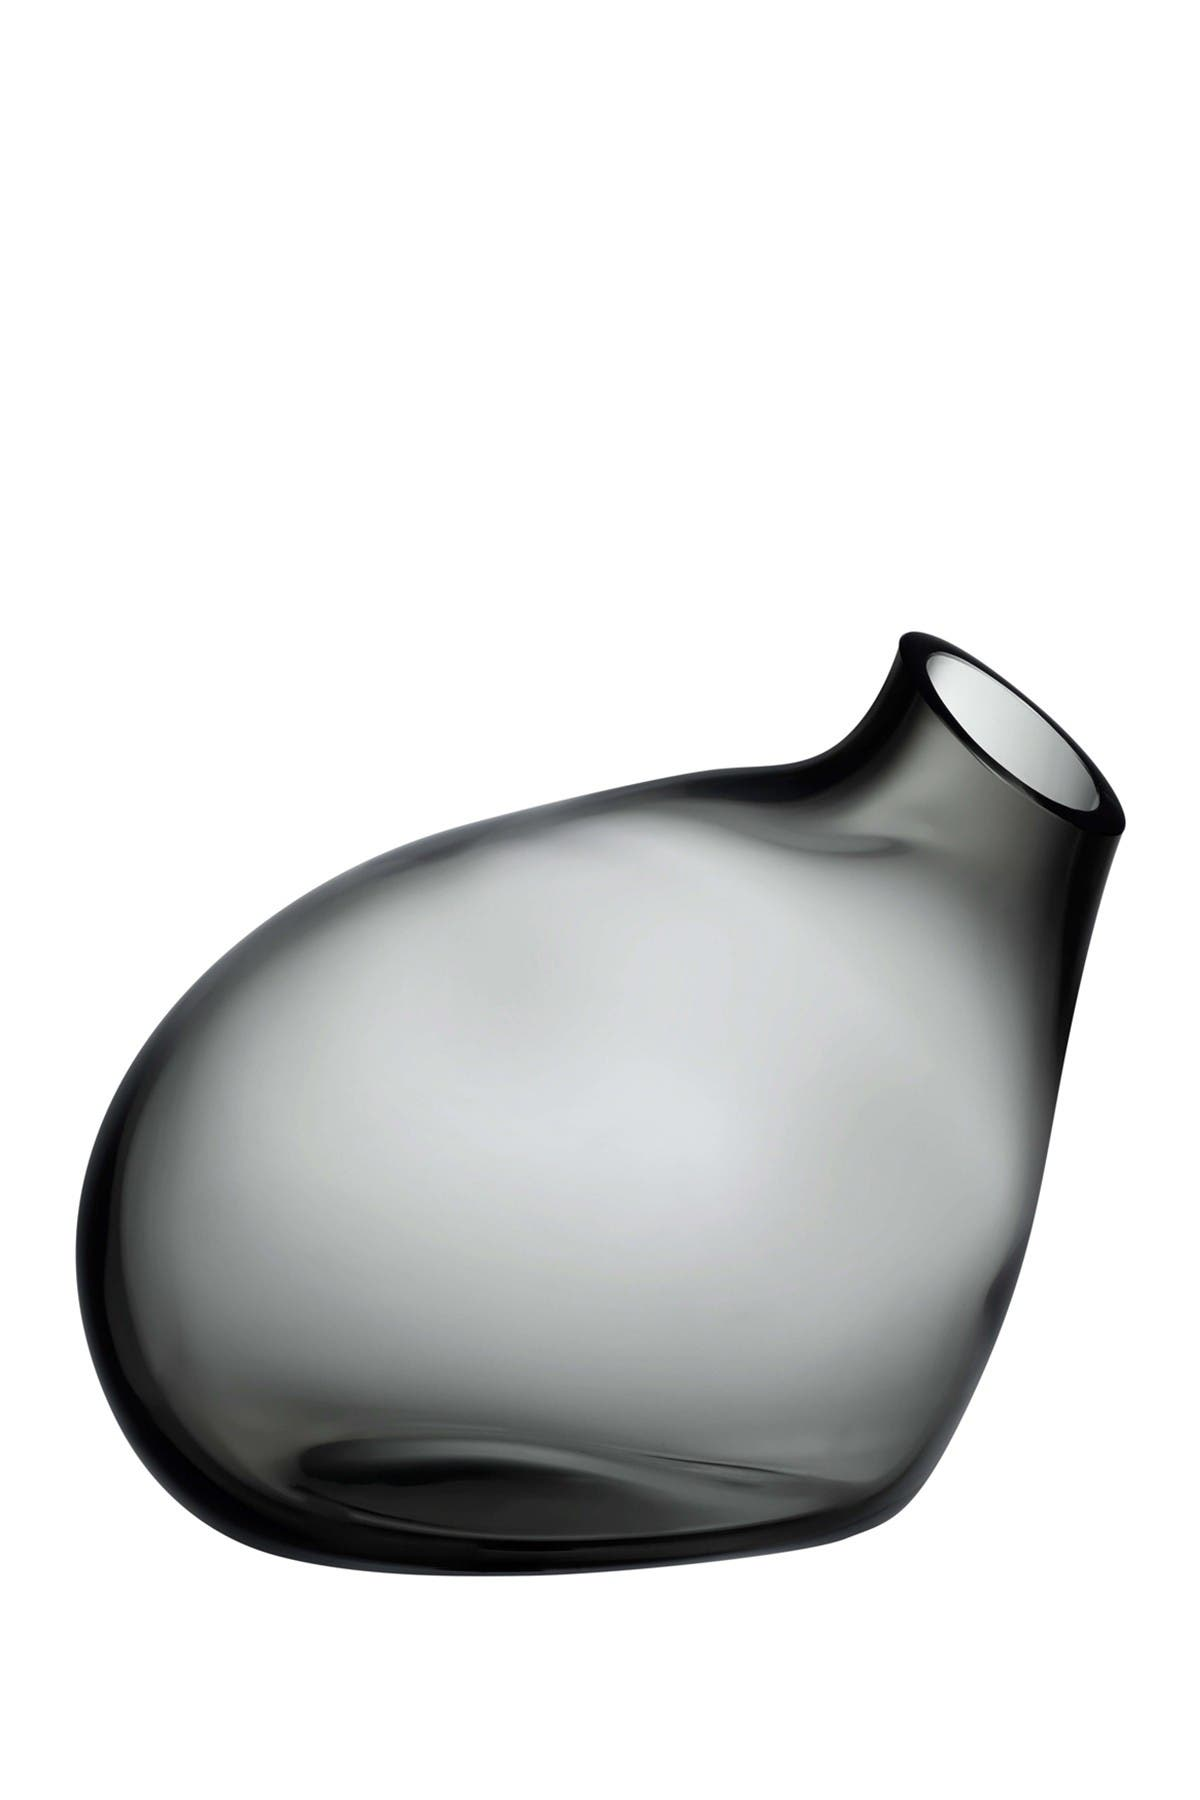 Image of Nude Glass Bubble Vase - Small - Smoke